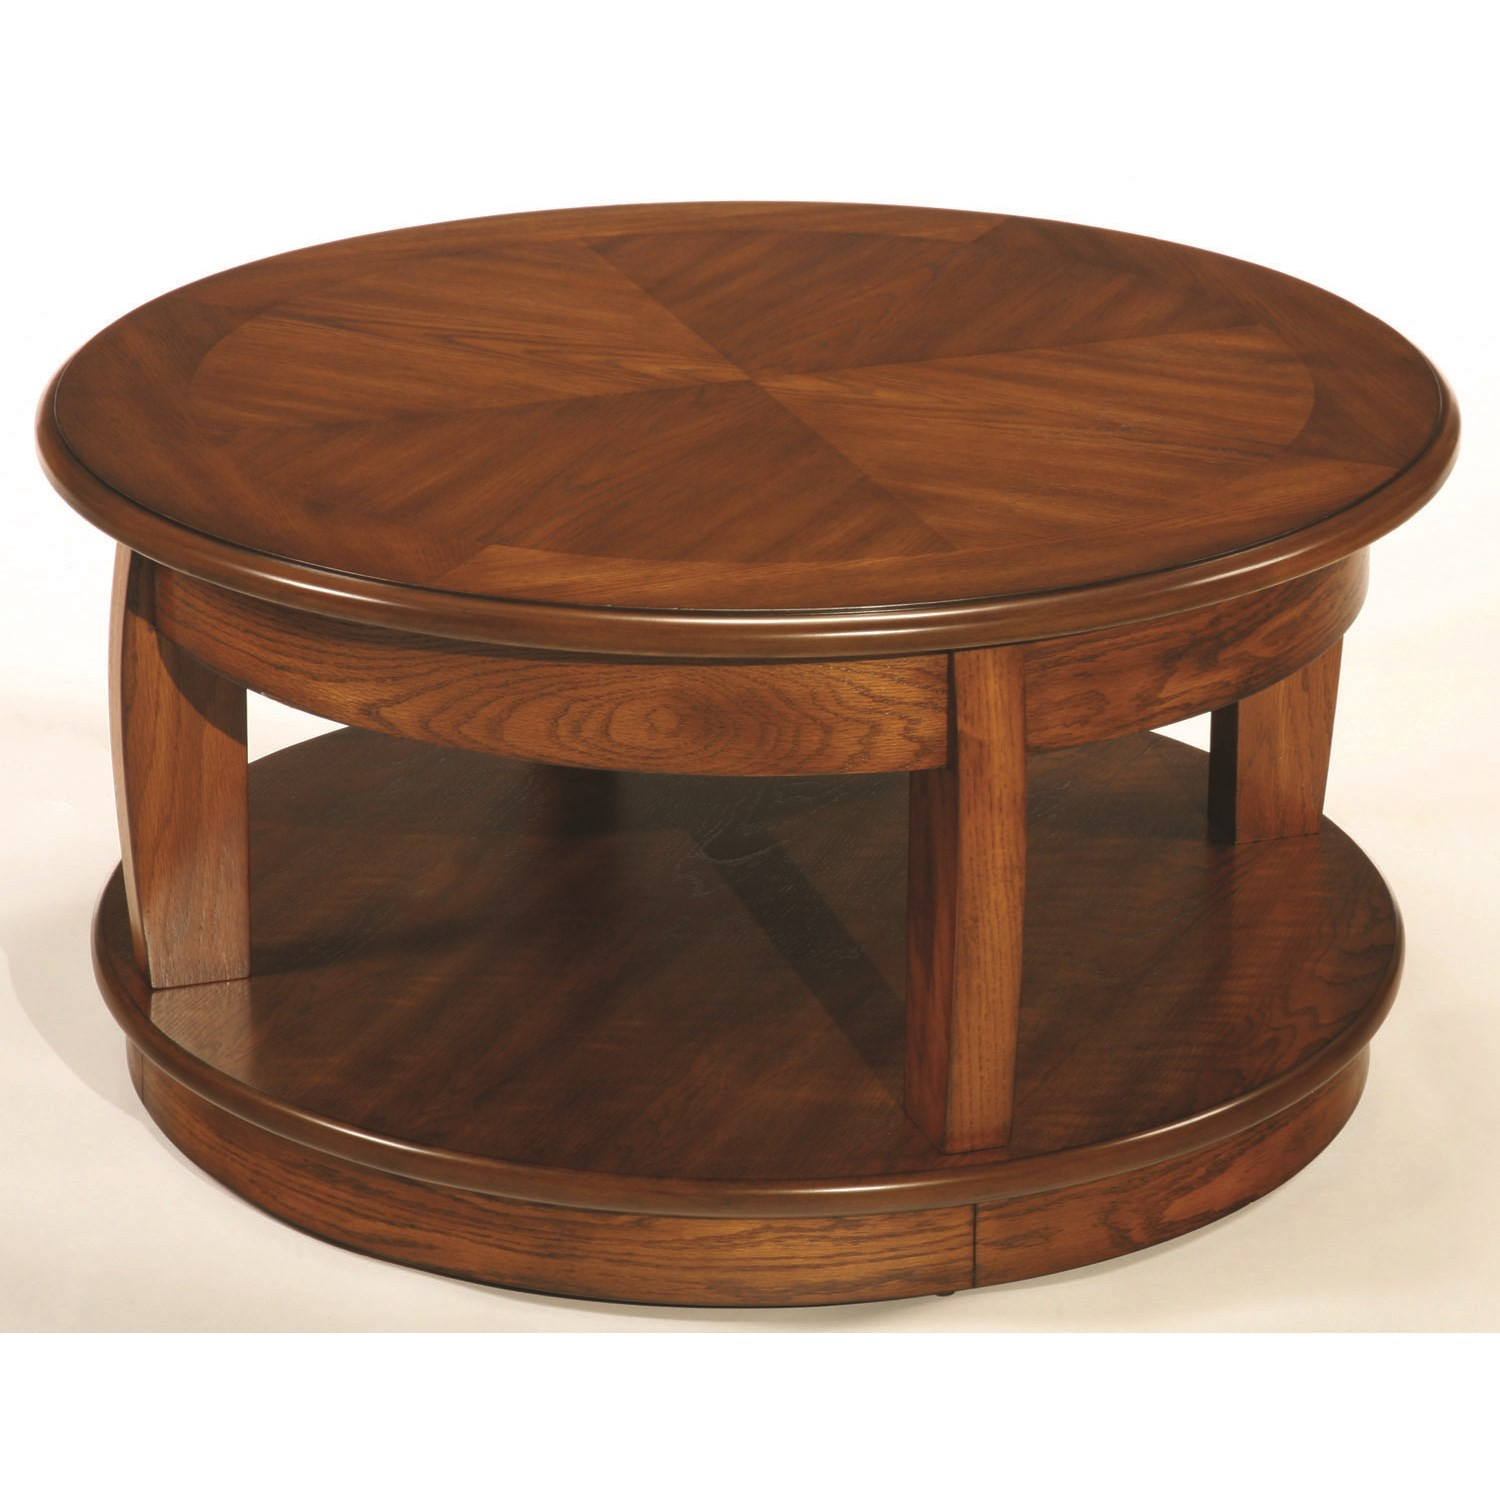 Best ideas about Round Lift Top Coffee Table . Save or Pin Hammary Furniture Ascend Round Lift Top Coffee Table Now.